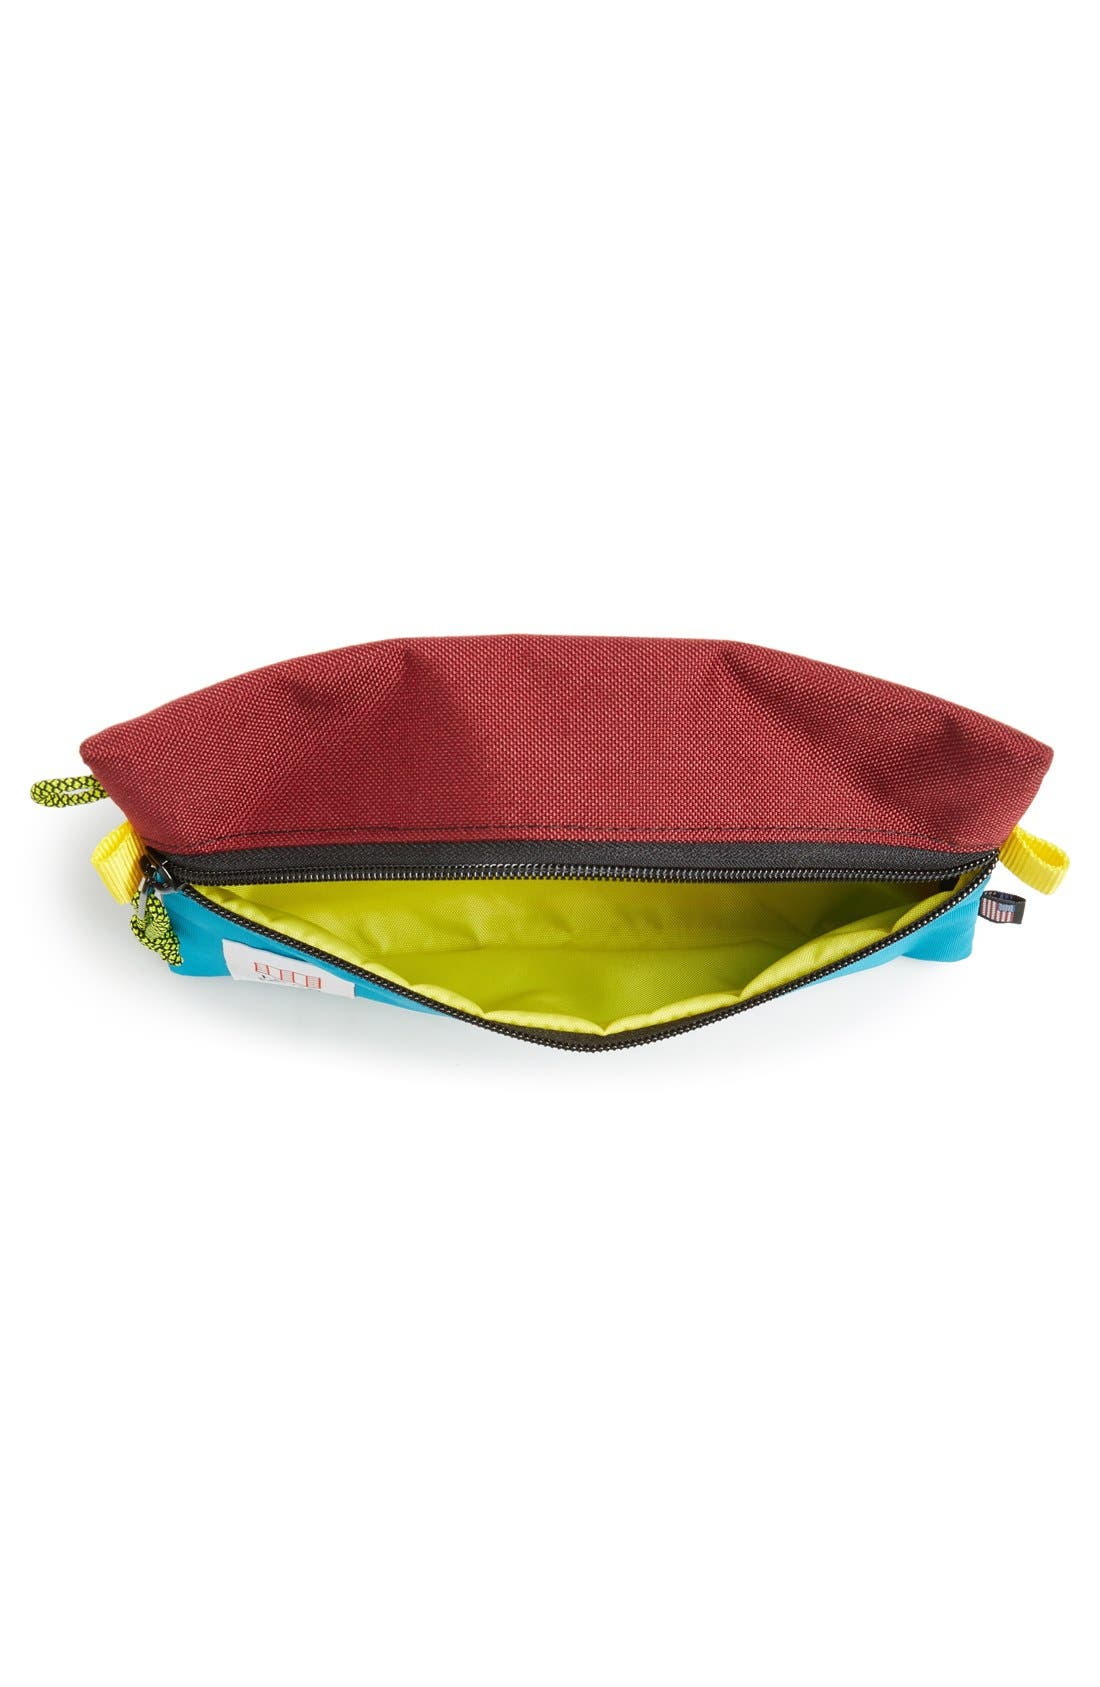 ,                             TopoDesigns Accessory Bag,                             Alternate thumbnail 4, color,                             BURGUNDY/ TURQUOISE